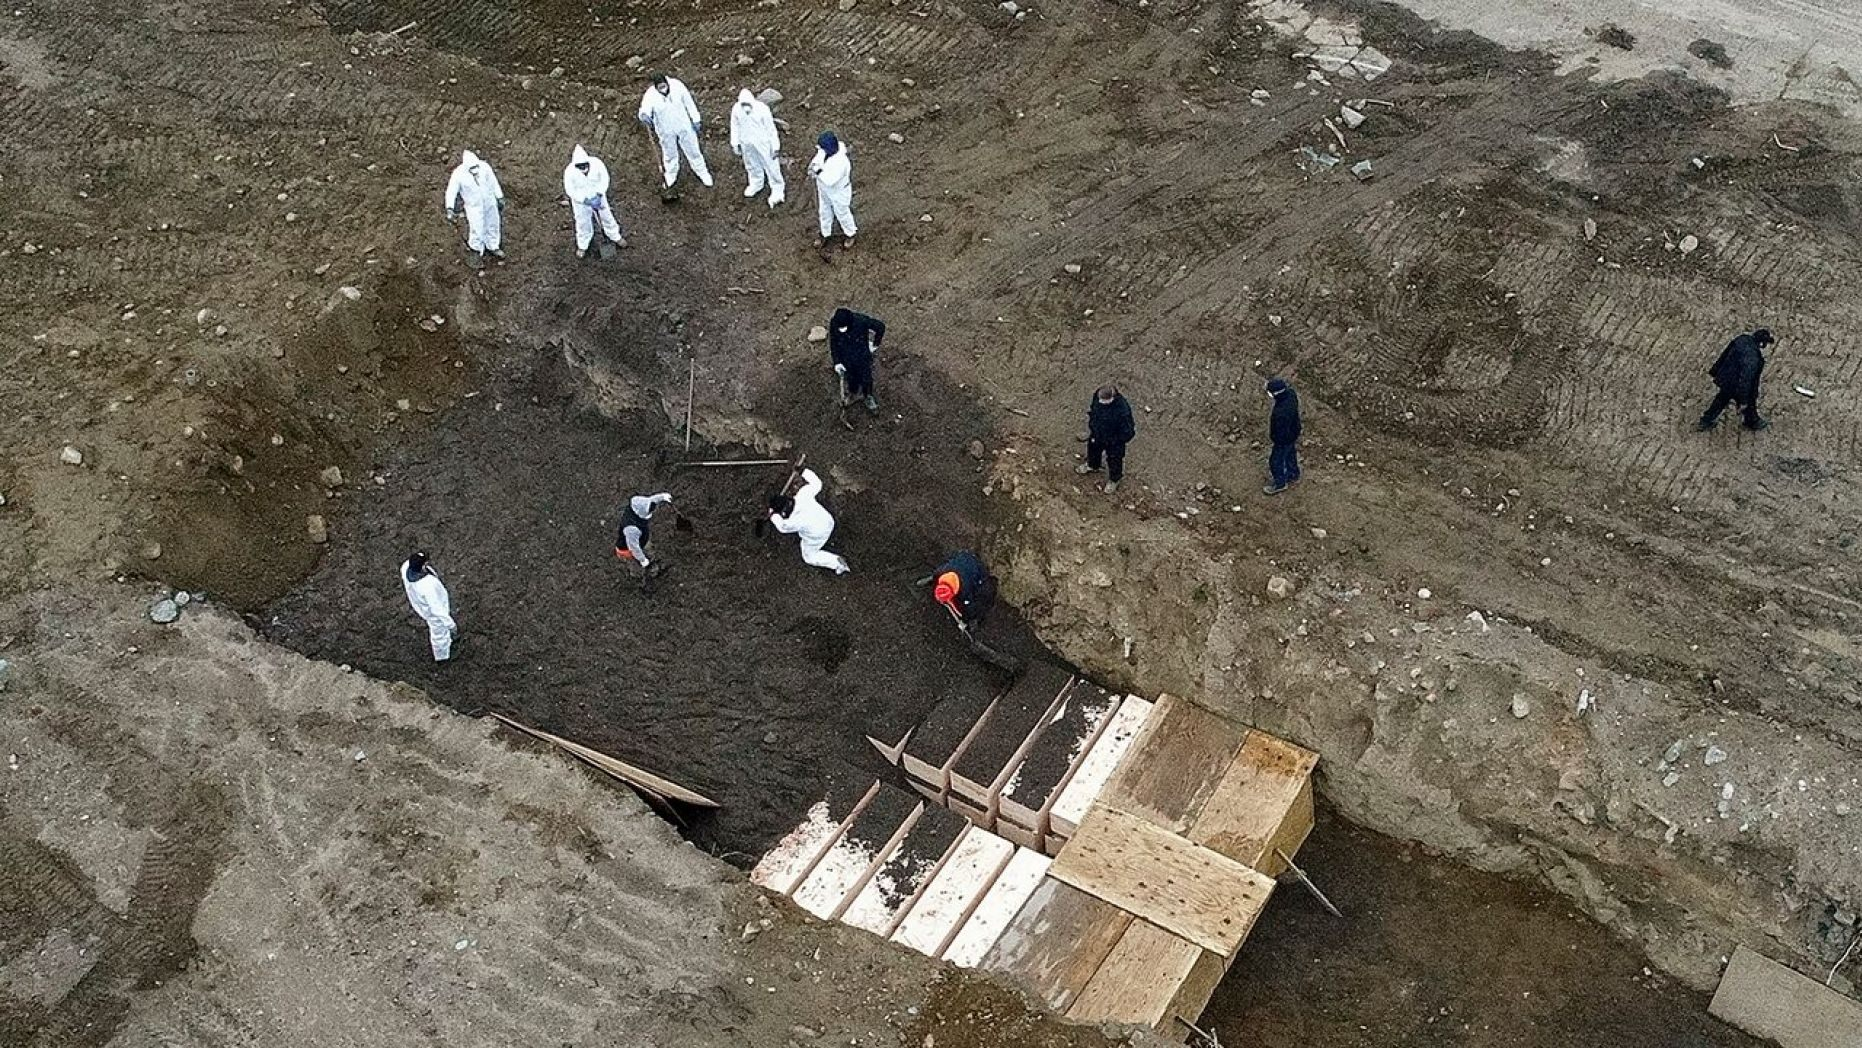 New York City's medical examiner says the city will hold onto remains for 14 days before they will be transferred to Hart Island.